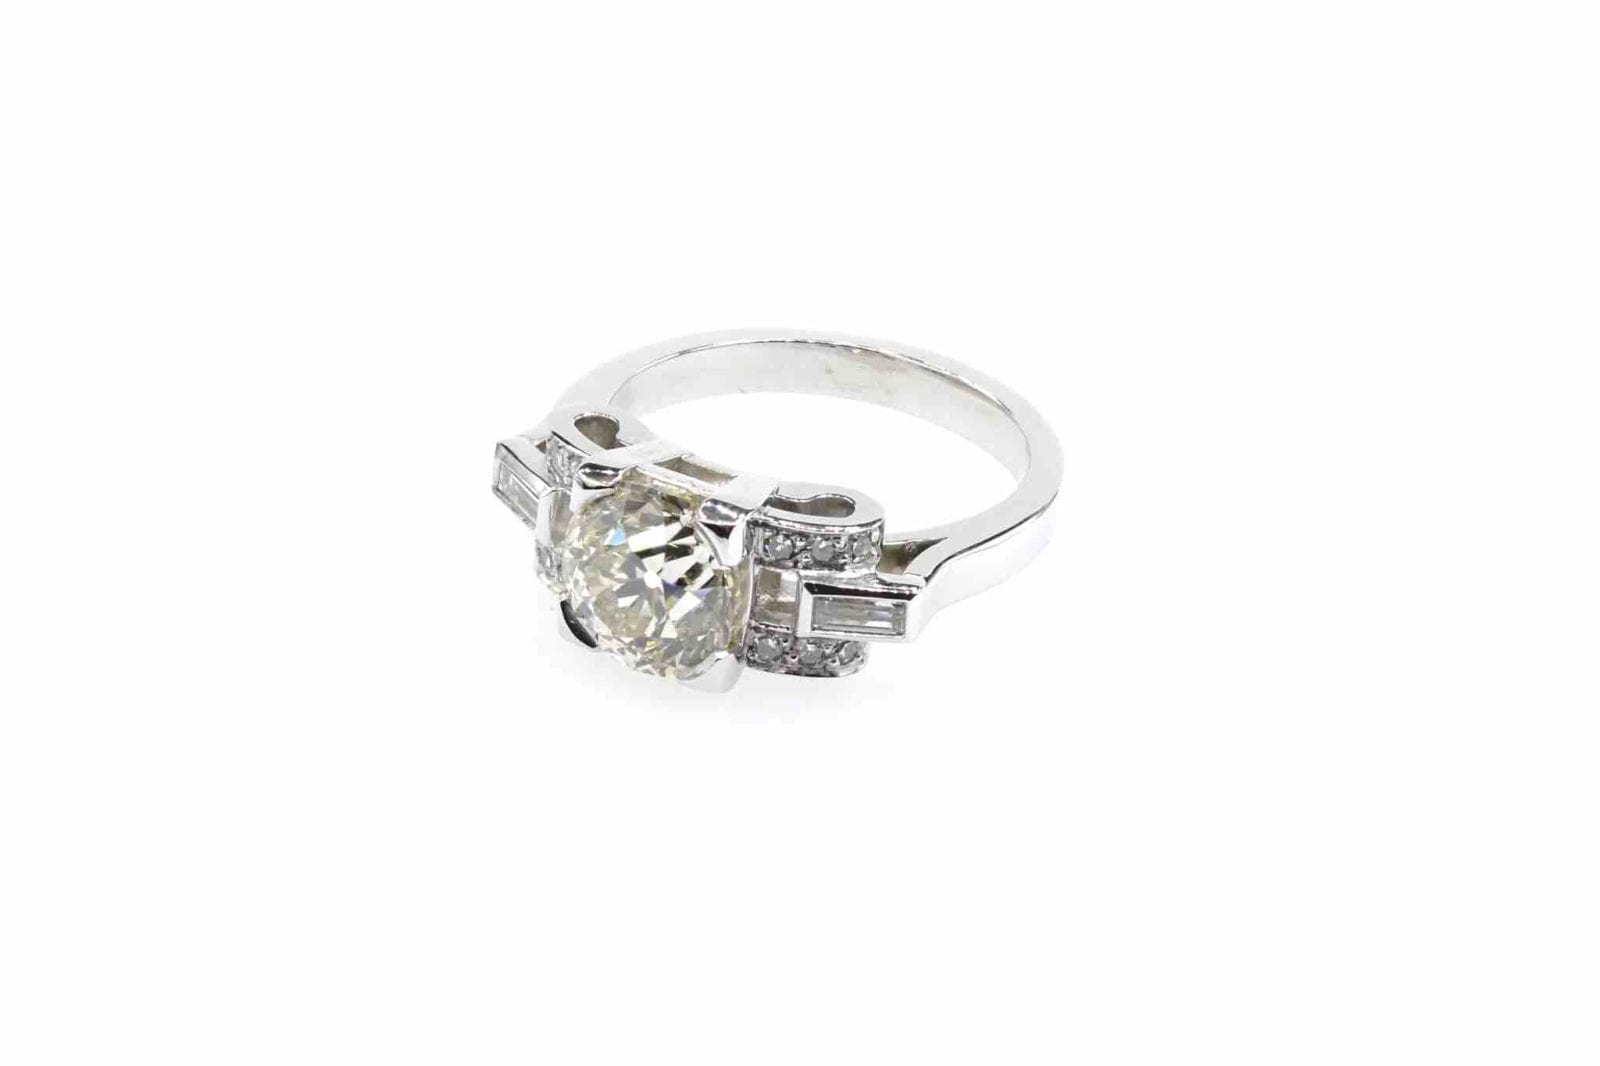 Bague diamants 2,42 carats